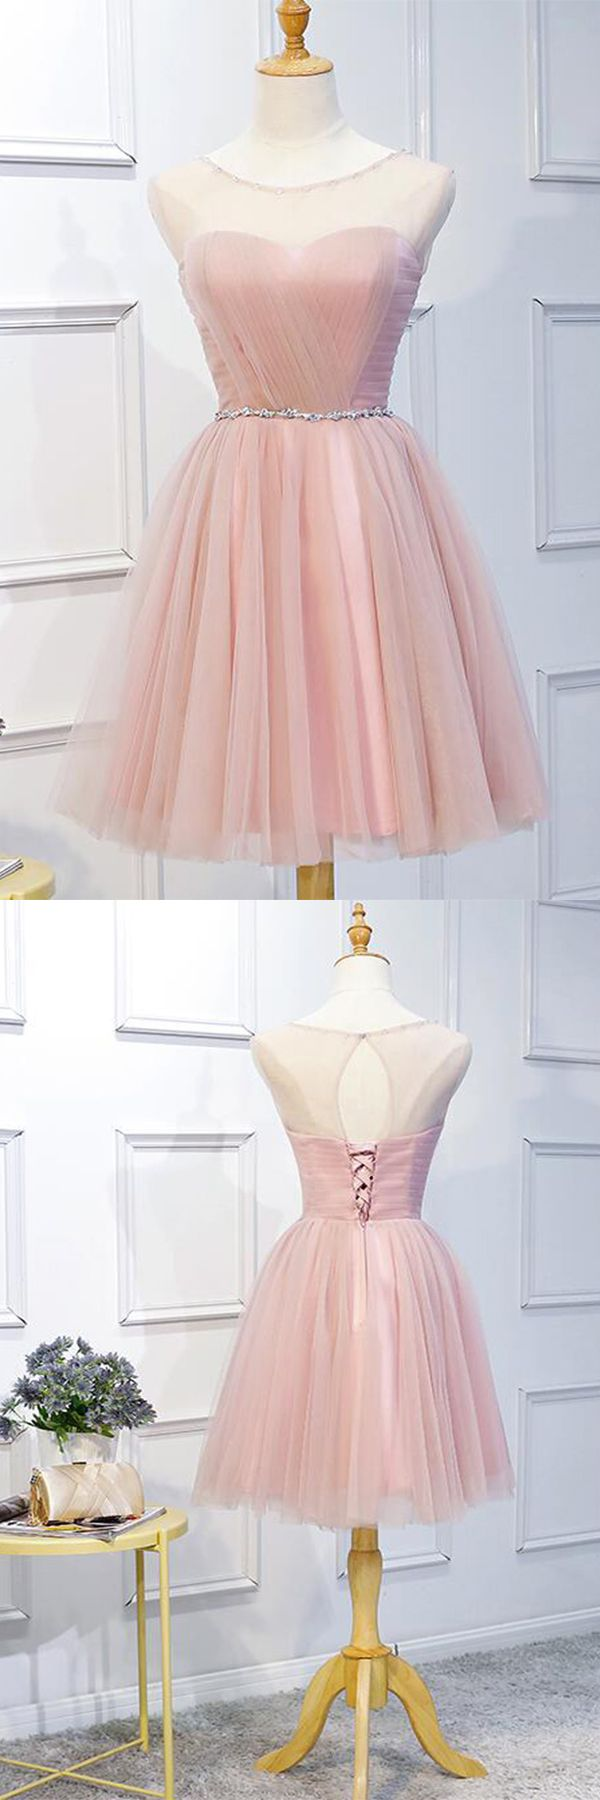 Pink tulle homecoming dress with sashed best seller